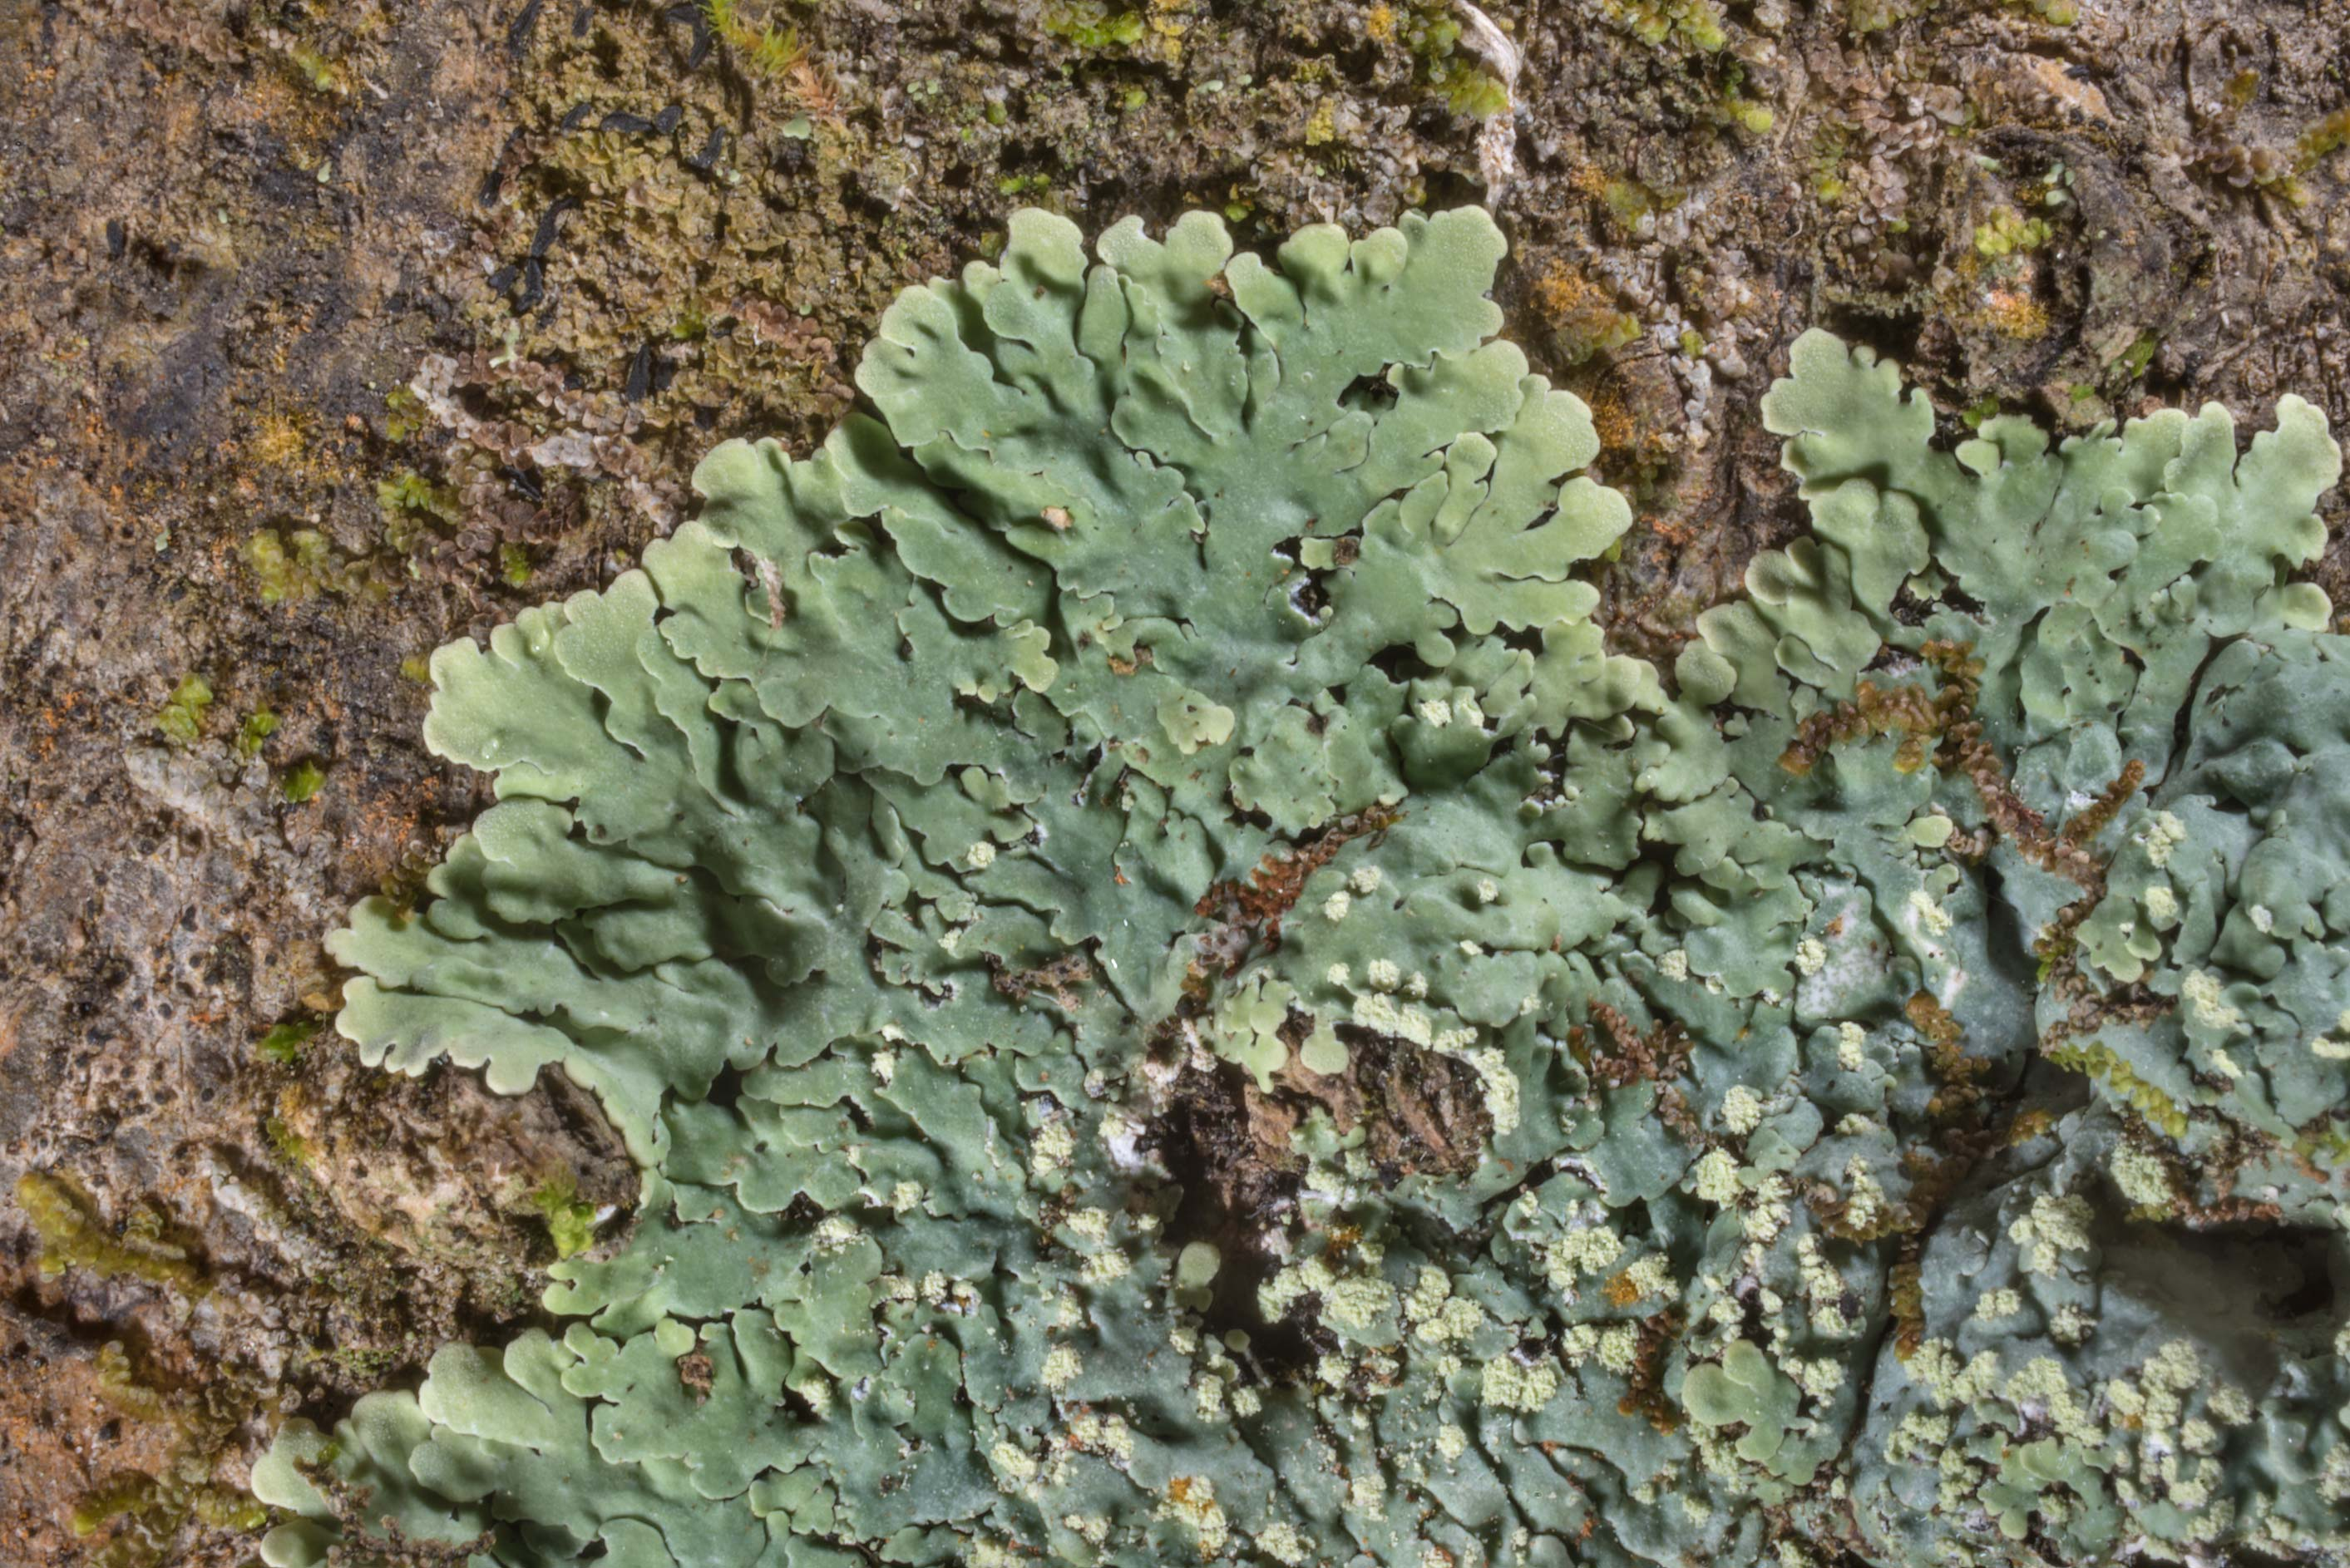 Powdery medallion lichen (Dirinaria applanata) in Lick Creek Park. College Station, Texas